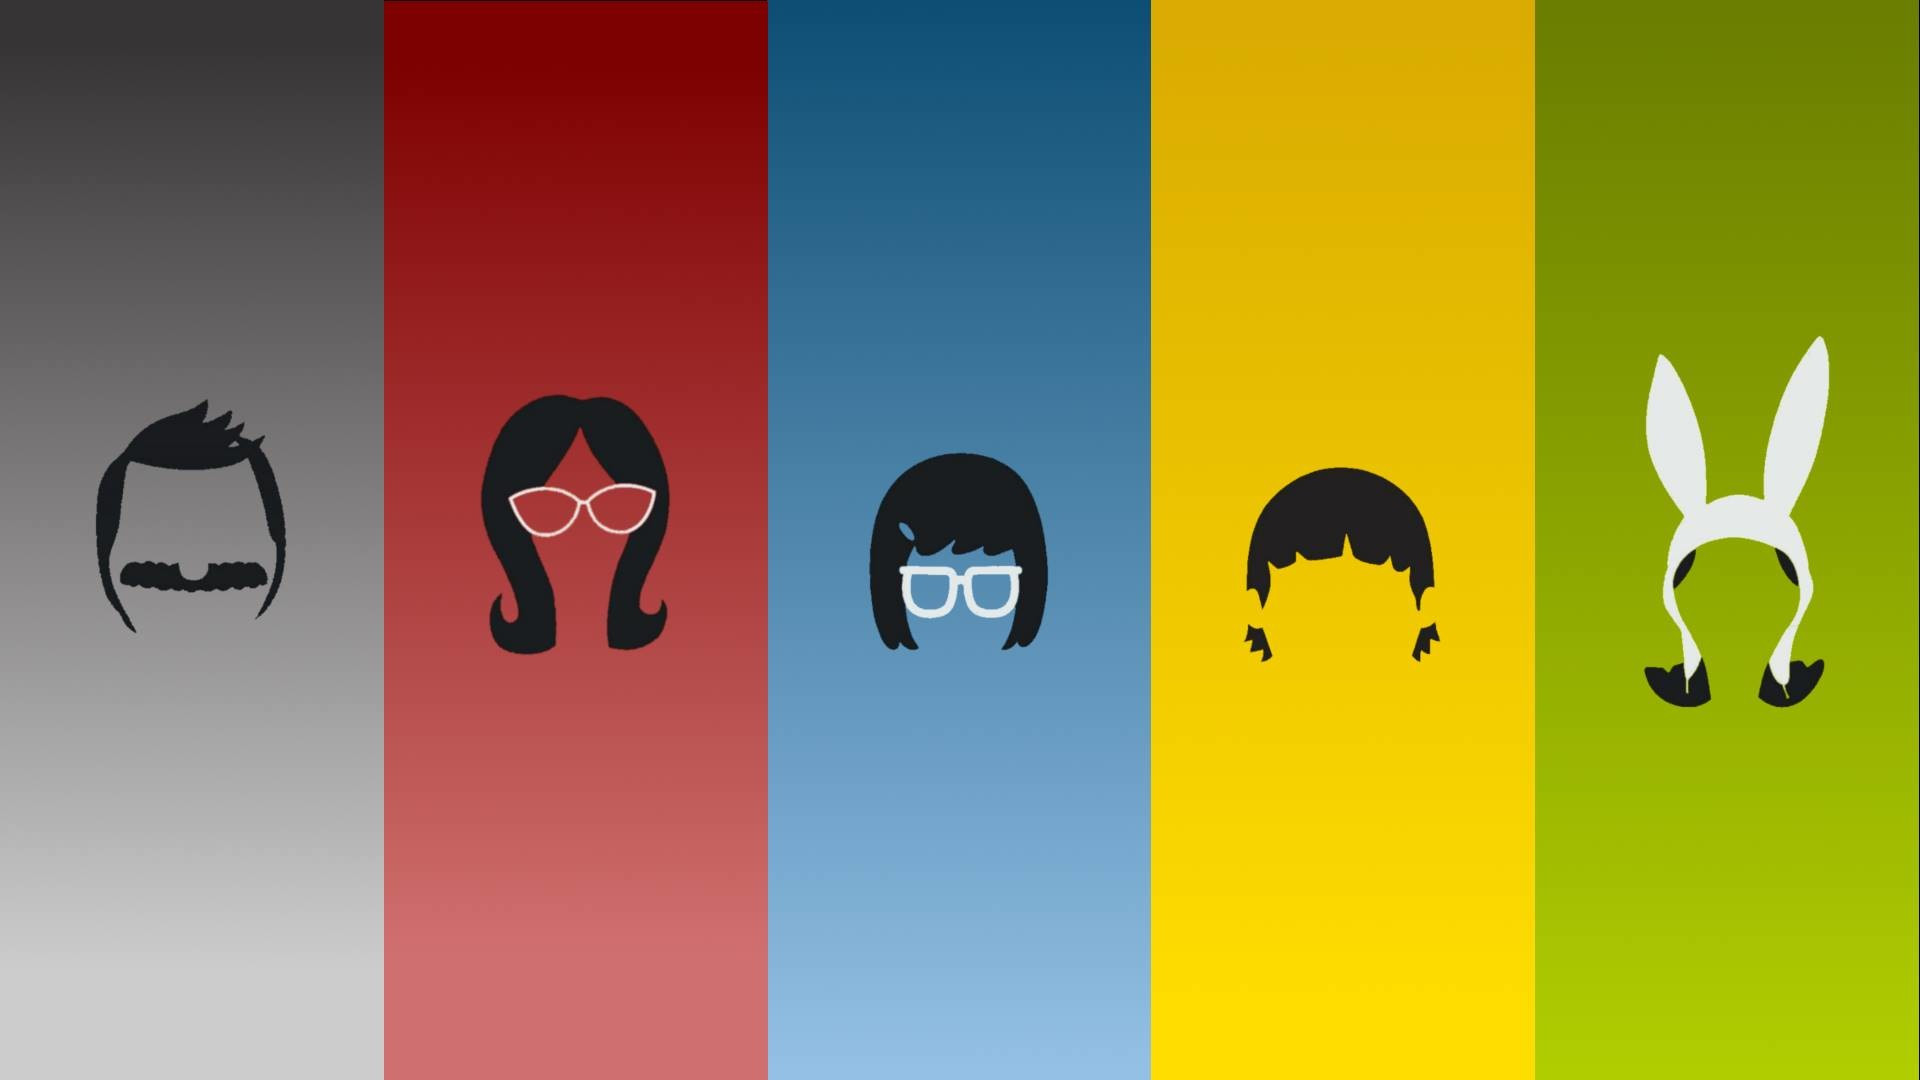 Bob's Burgers Wallpaper. by MIGRANE0Aug 15 2015. Load 26 more images Grid  view